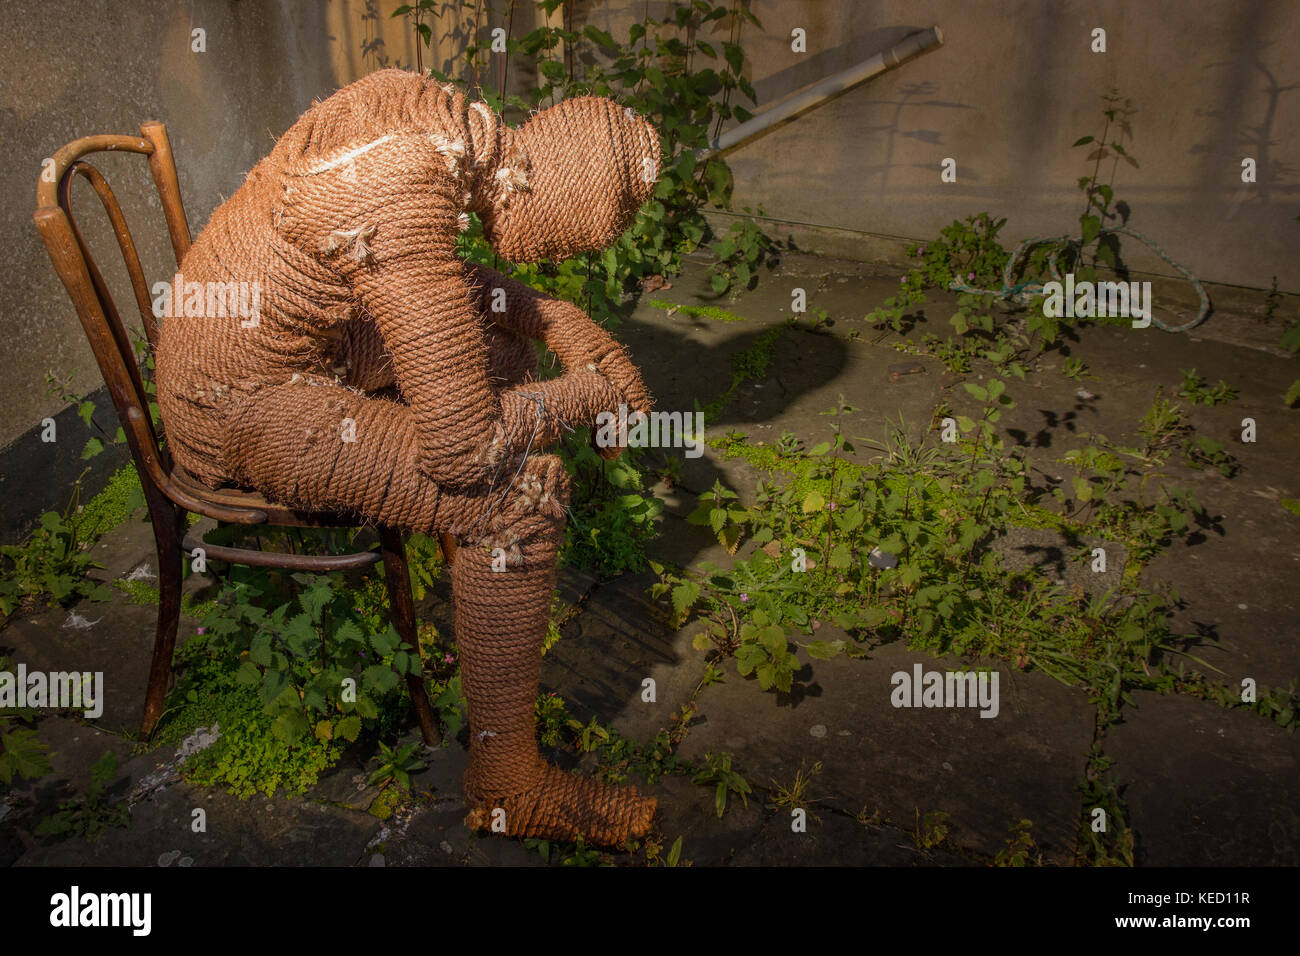 A figure made of rope sitting on a chair in a weedy concrete garden. - Stock Image